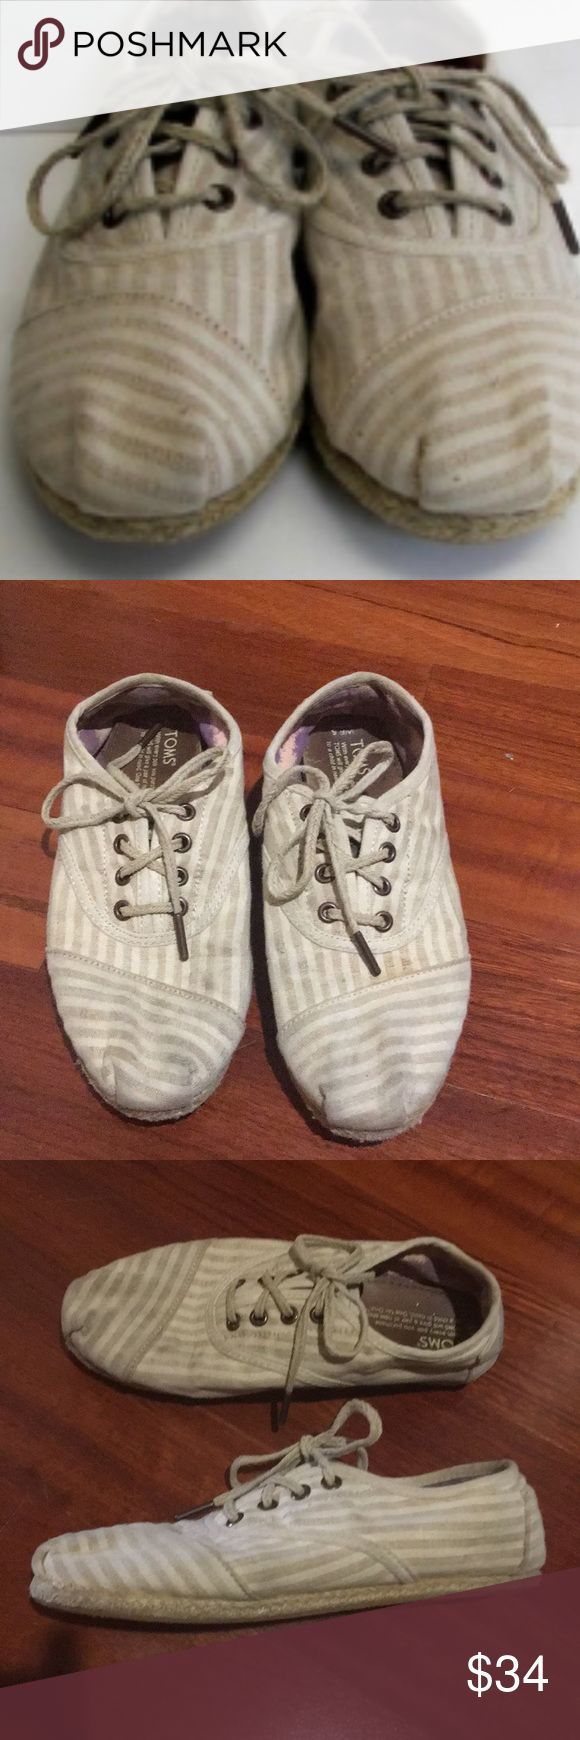 TOMS Cordone beige striped espadrilles woven lace Toms cordone Beige striped espadrilles woven laces, special edition toms. In excellent pristine condition. Size women's 6.5, worn only once. Love this make of TOMS! Offers welcome. Toms Shoes Flats & Loafers